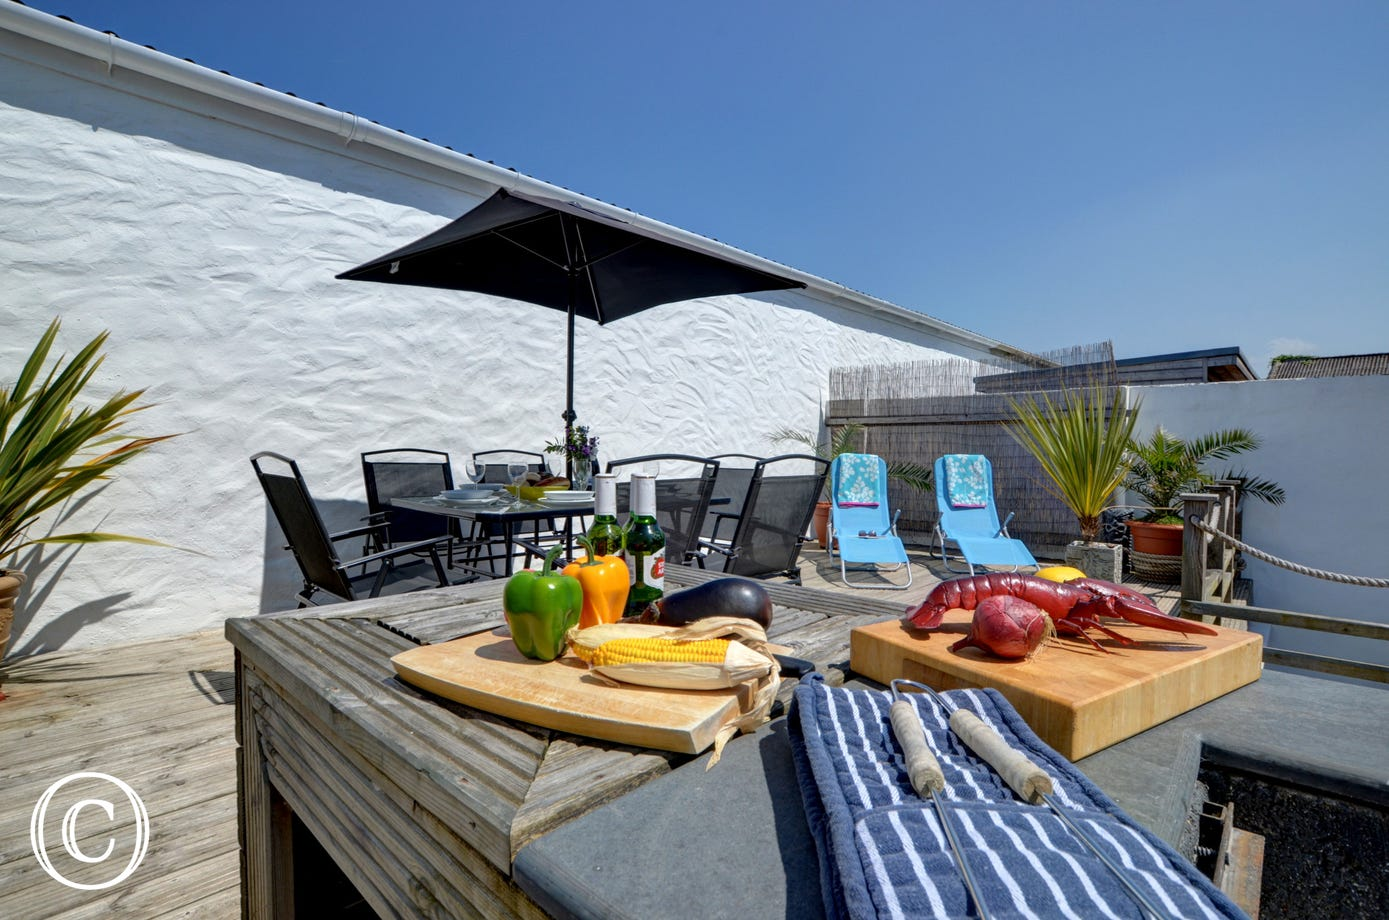 The superb terrace area is perfectly kitted out to enjoy BBQ's and al fresco dining